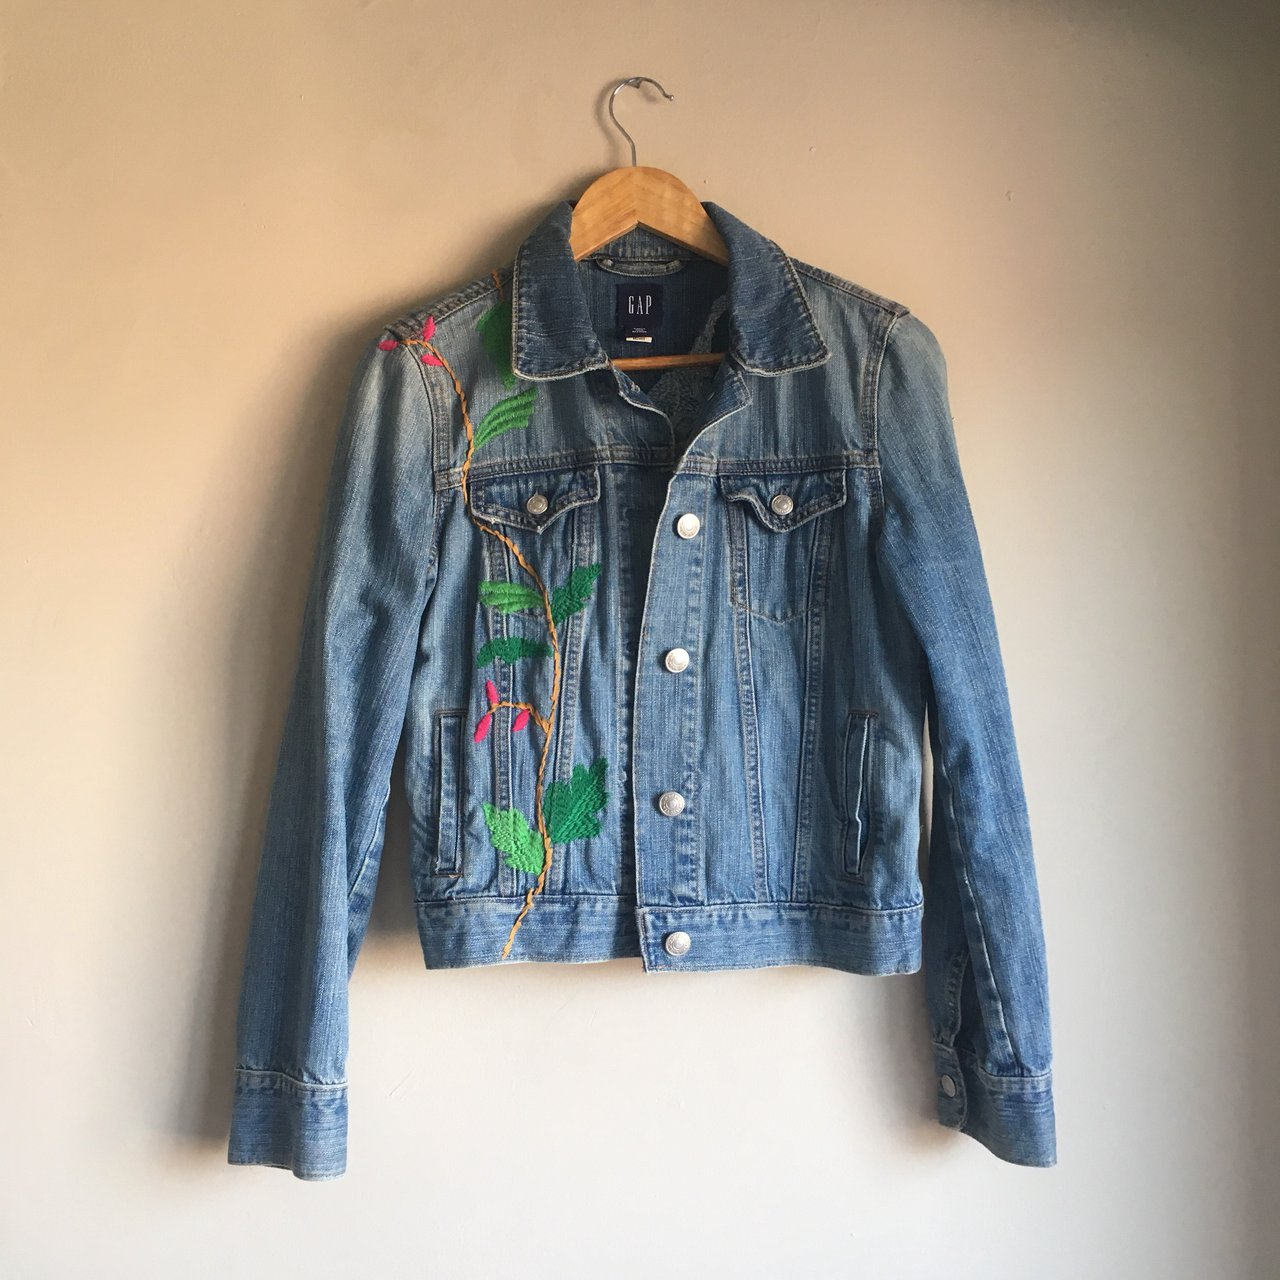 cc5c2f934b1 Amazing hand embroidered women s jean jacket with a on - Depop